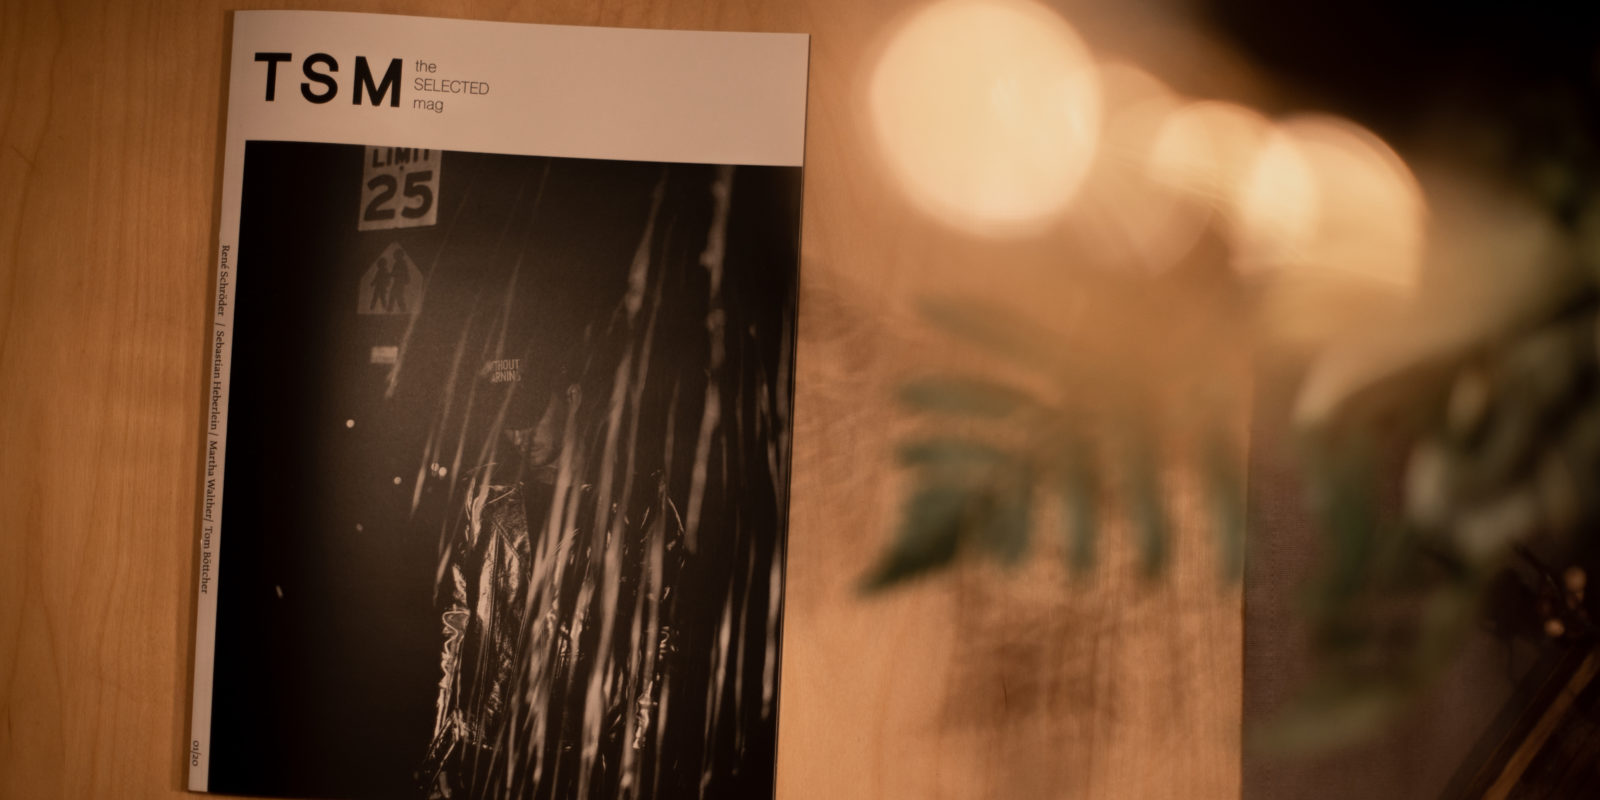 the_selected_mag-rene-schroeder-photobooks_cover